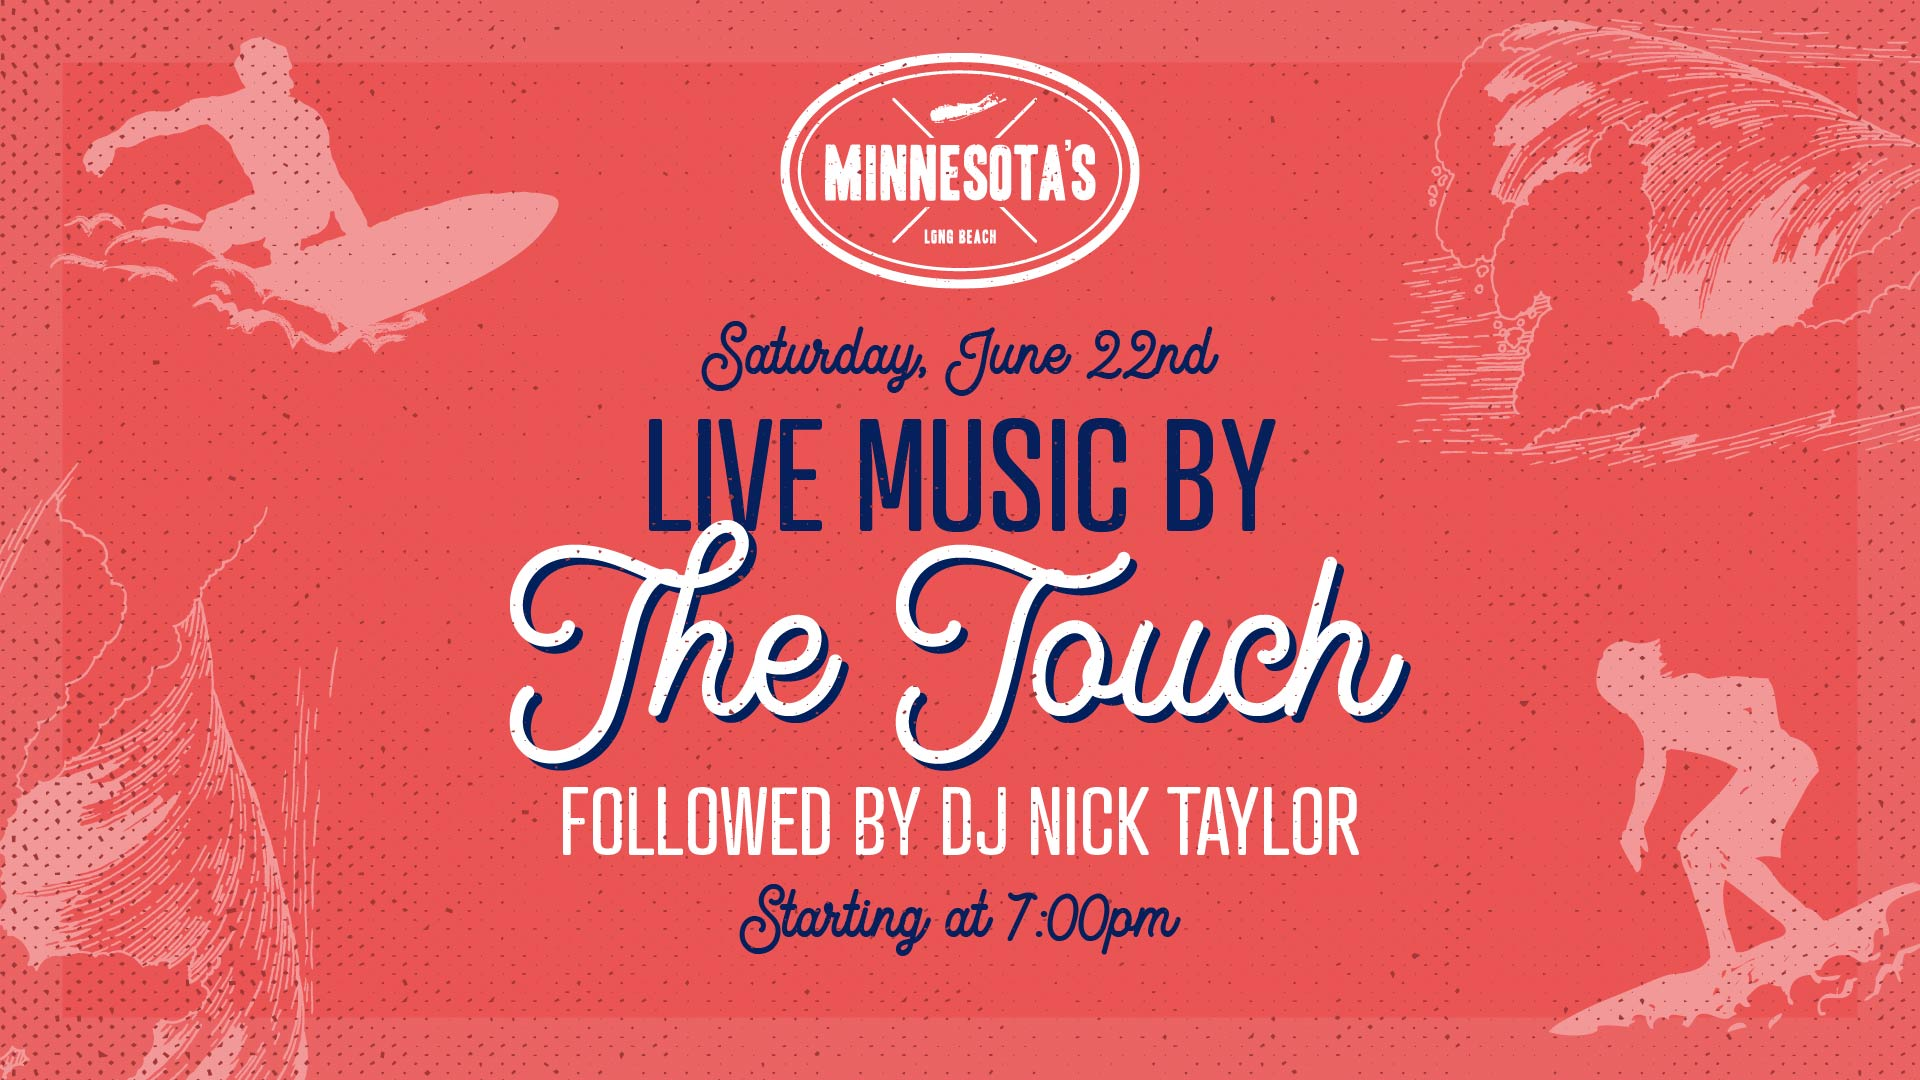 flyer for live music by the touch followed by dj nick taylor at minnesotas on june 22nd at 7pm